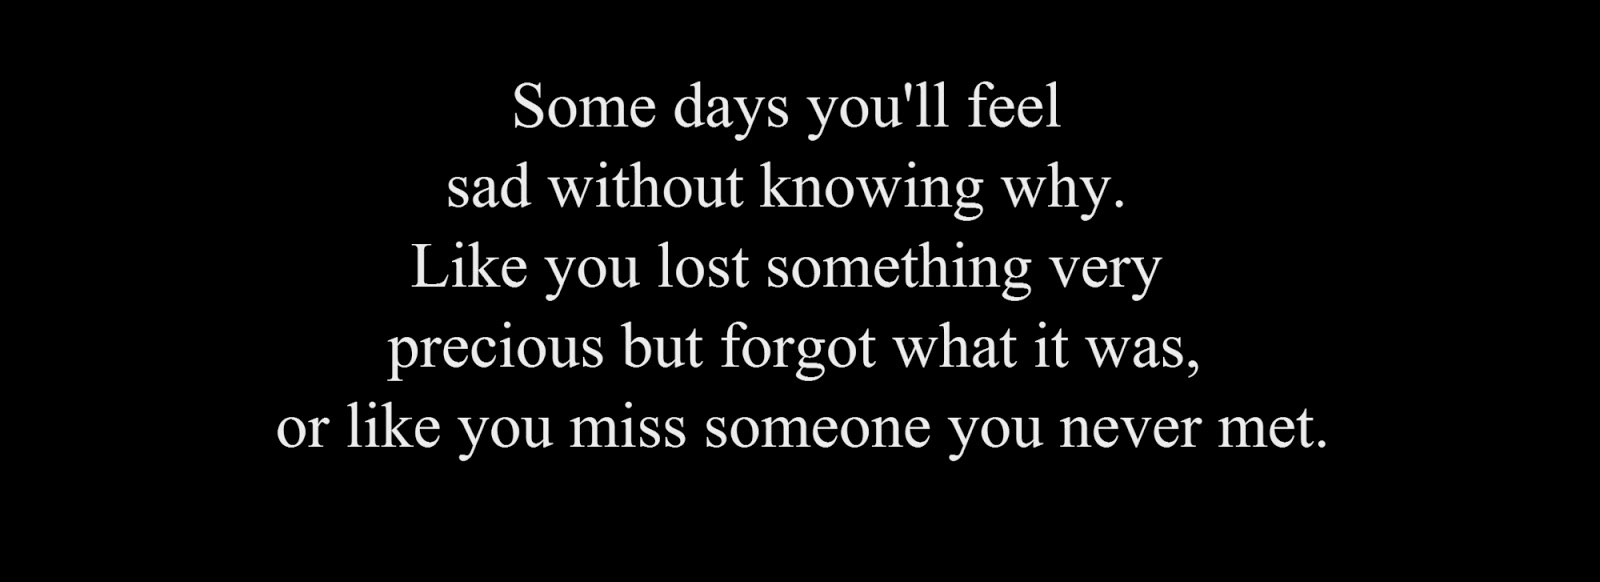 Some days you'll feel sad without knowing why. Like you lost something very precious but forgot what it was, or like you miss someone you never met.